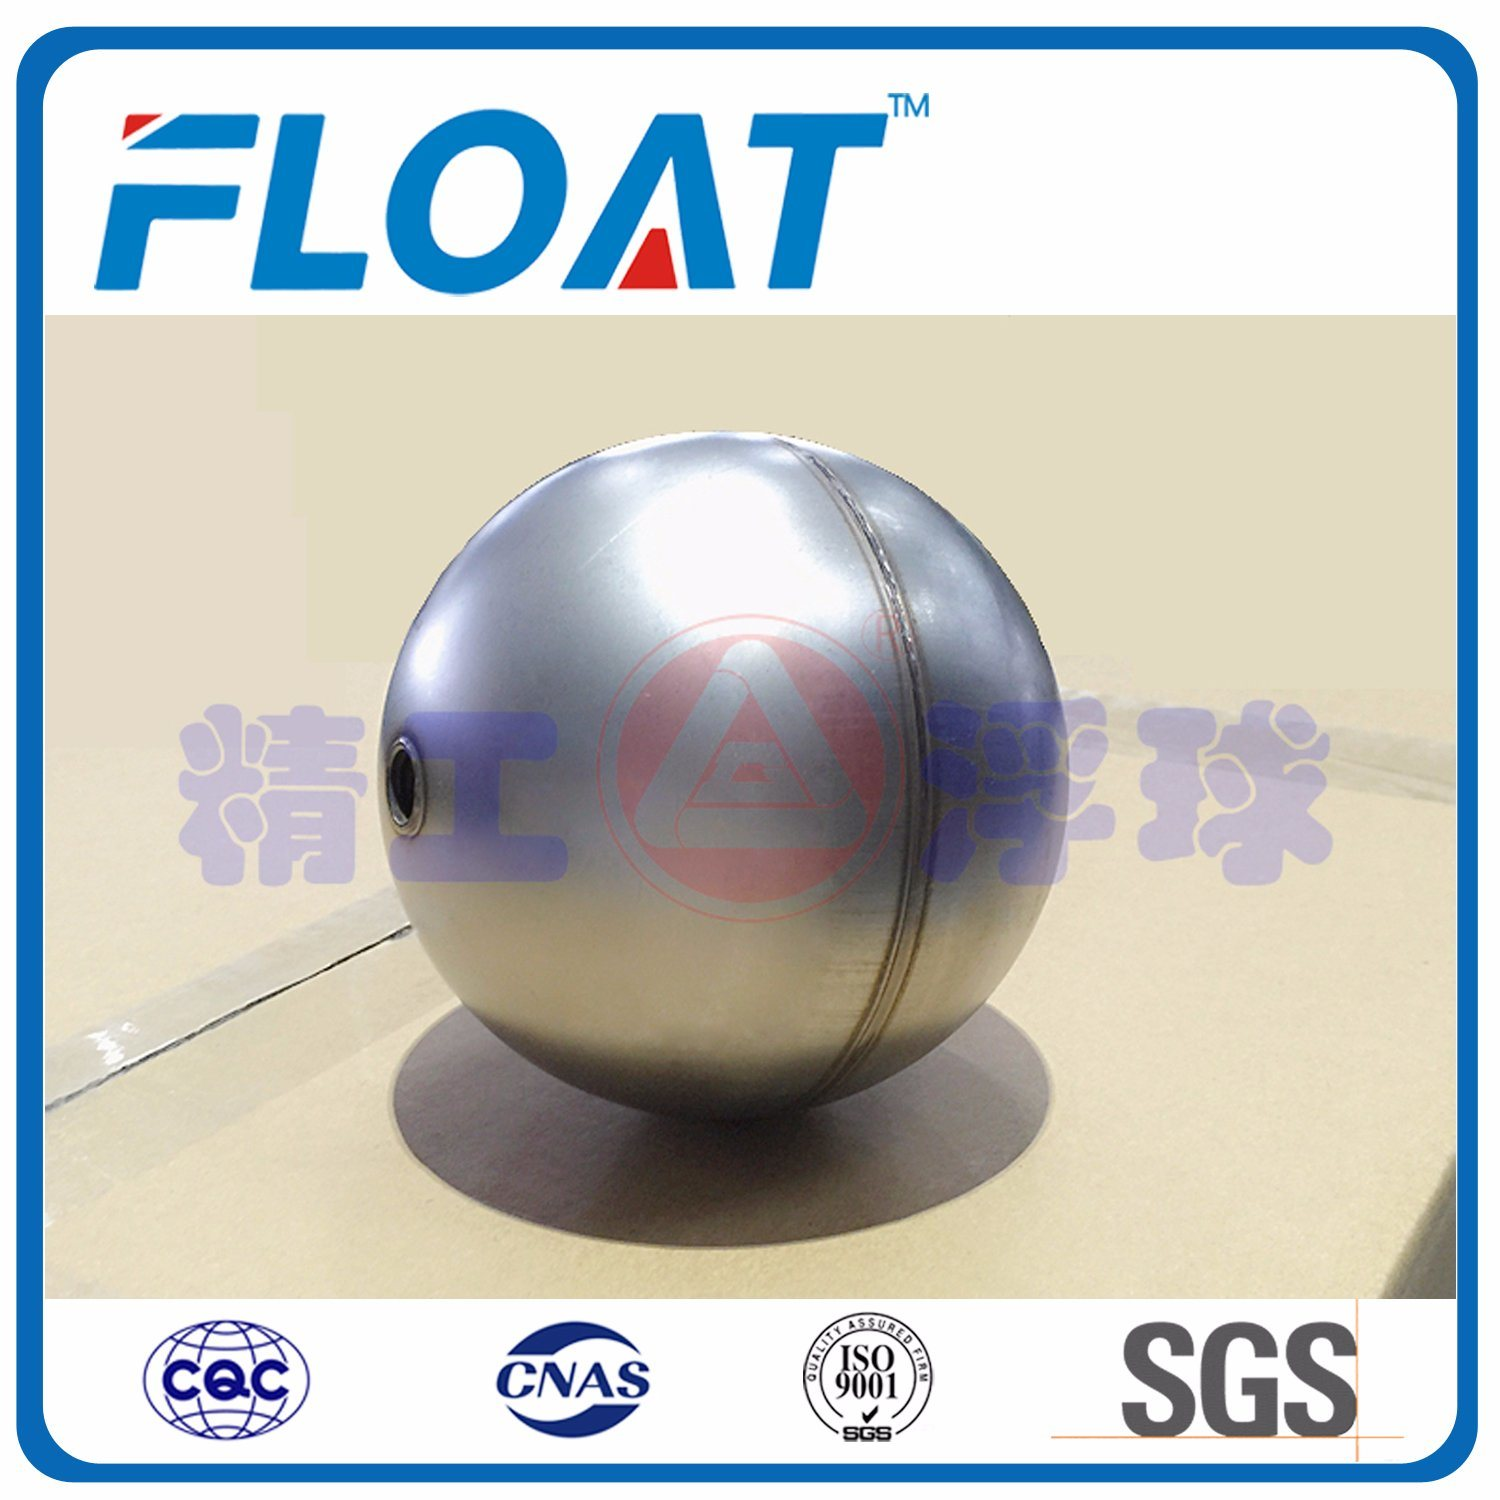 304 Stainless Steel Ball Floating Ball of Through Hole Guide